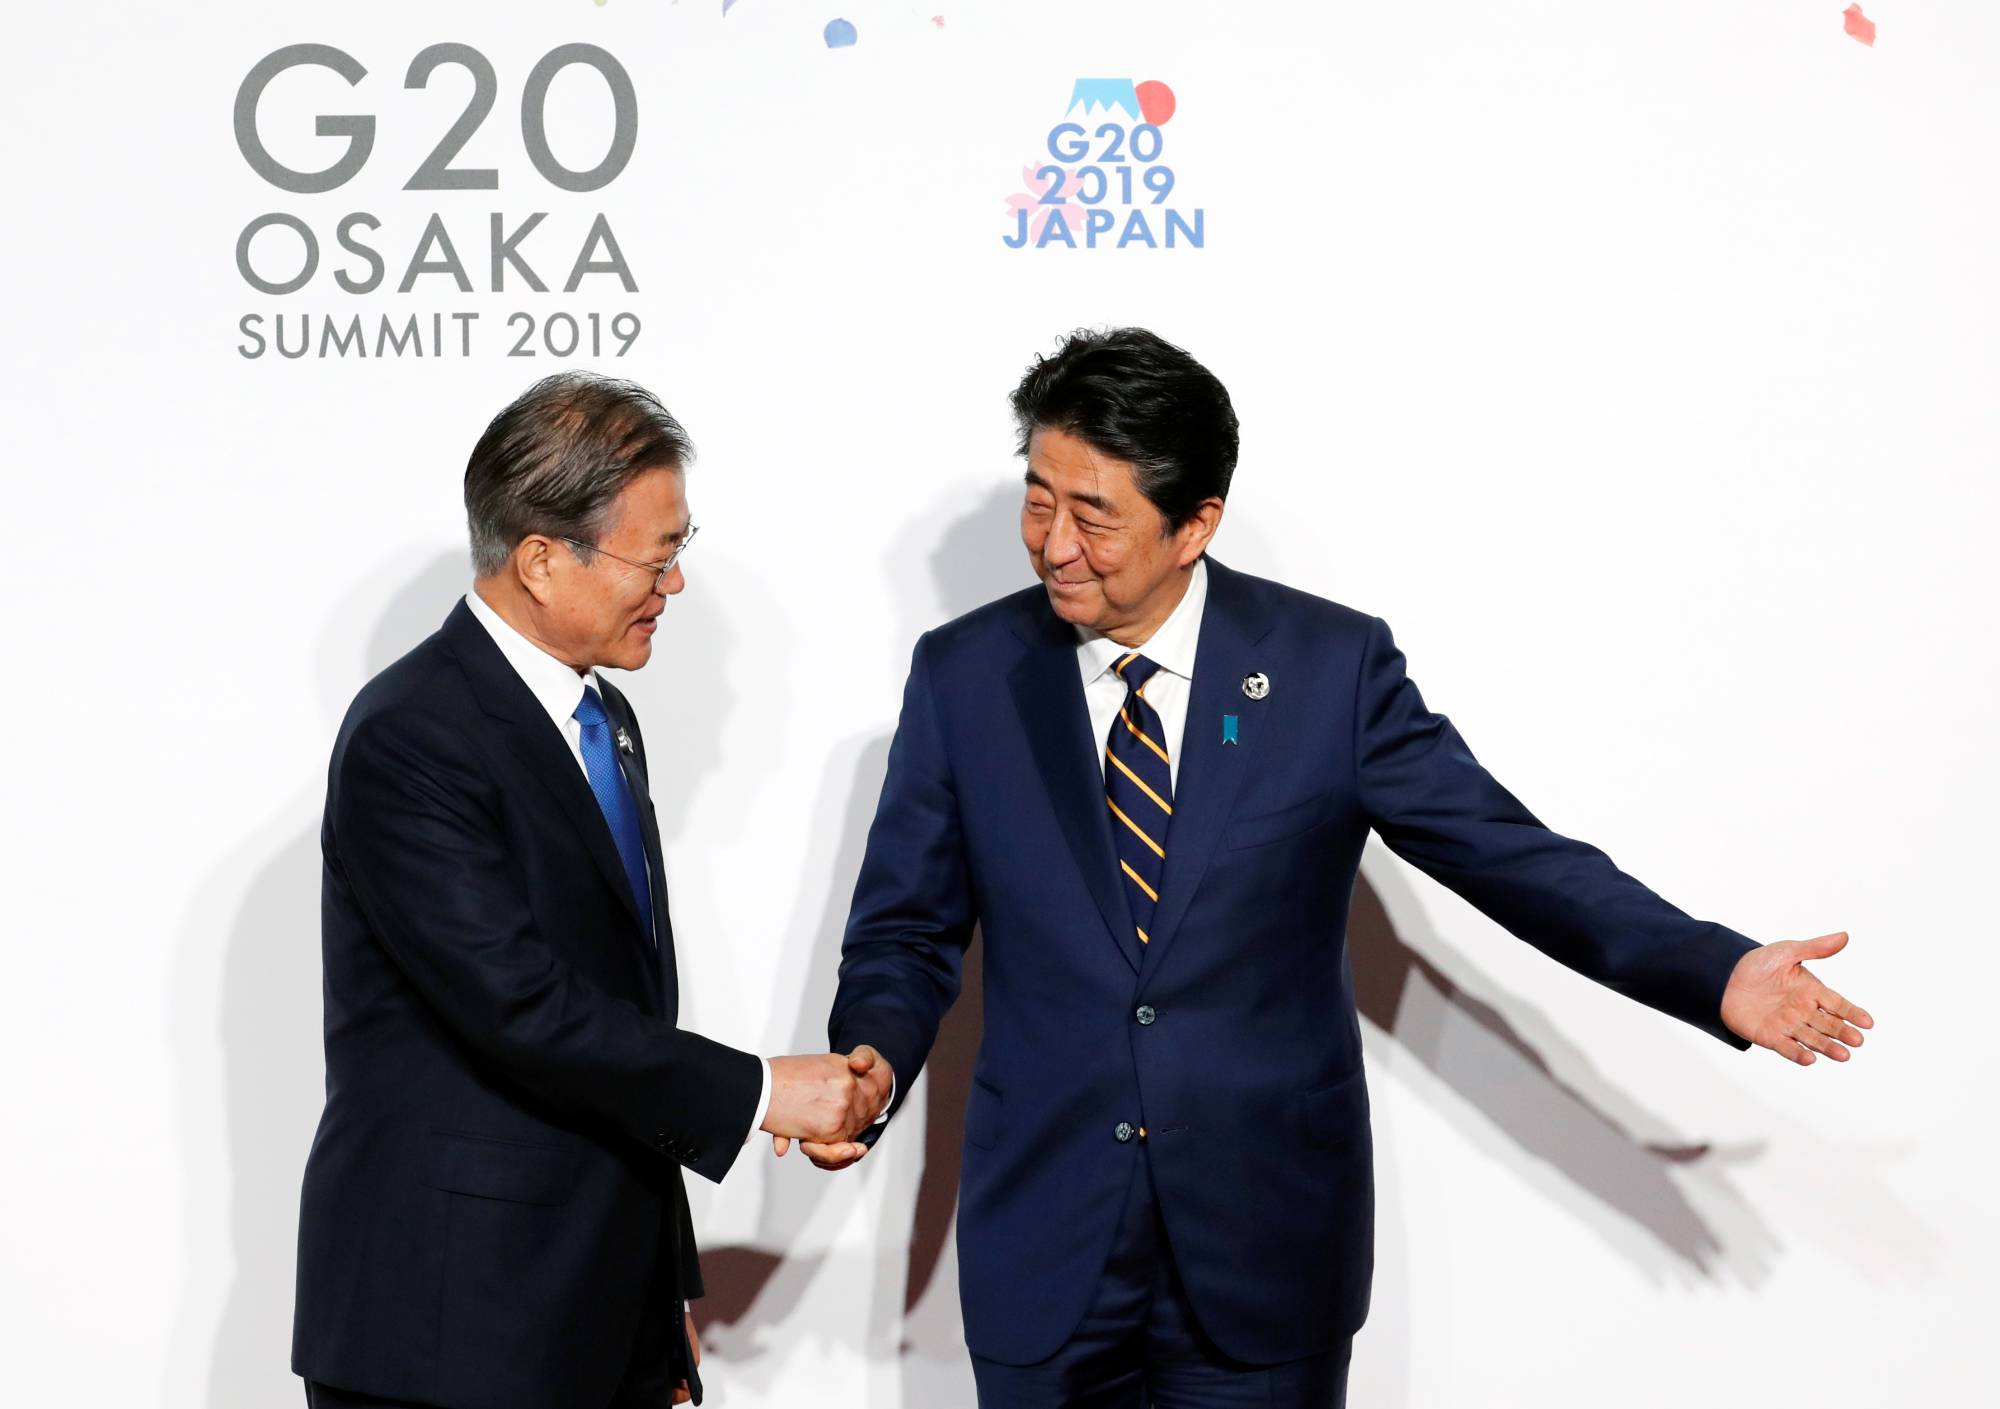 South Korean President Moon Jae-In is welcomed by Prime Minister Shinzo Abe upon his arrival at the Group of 20 leaders summit in Osaka in June 2019.   POOL / VIA REUTERS